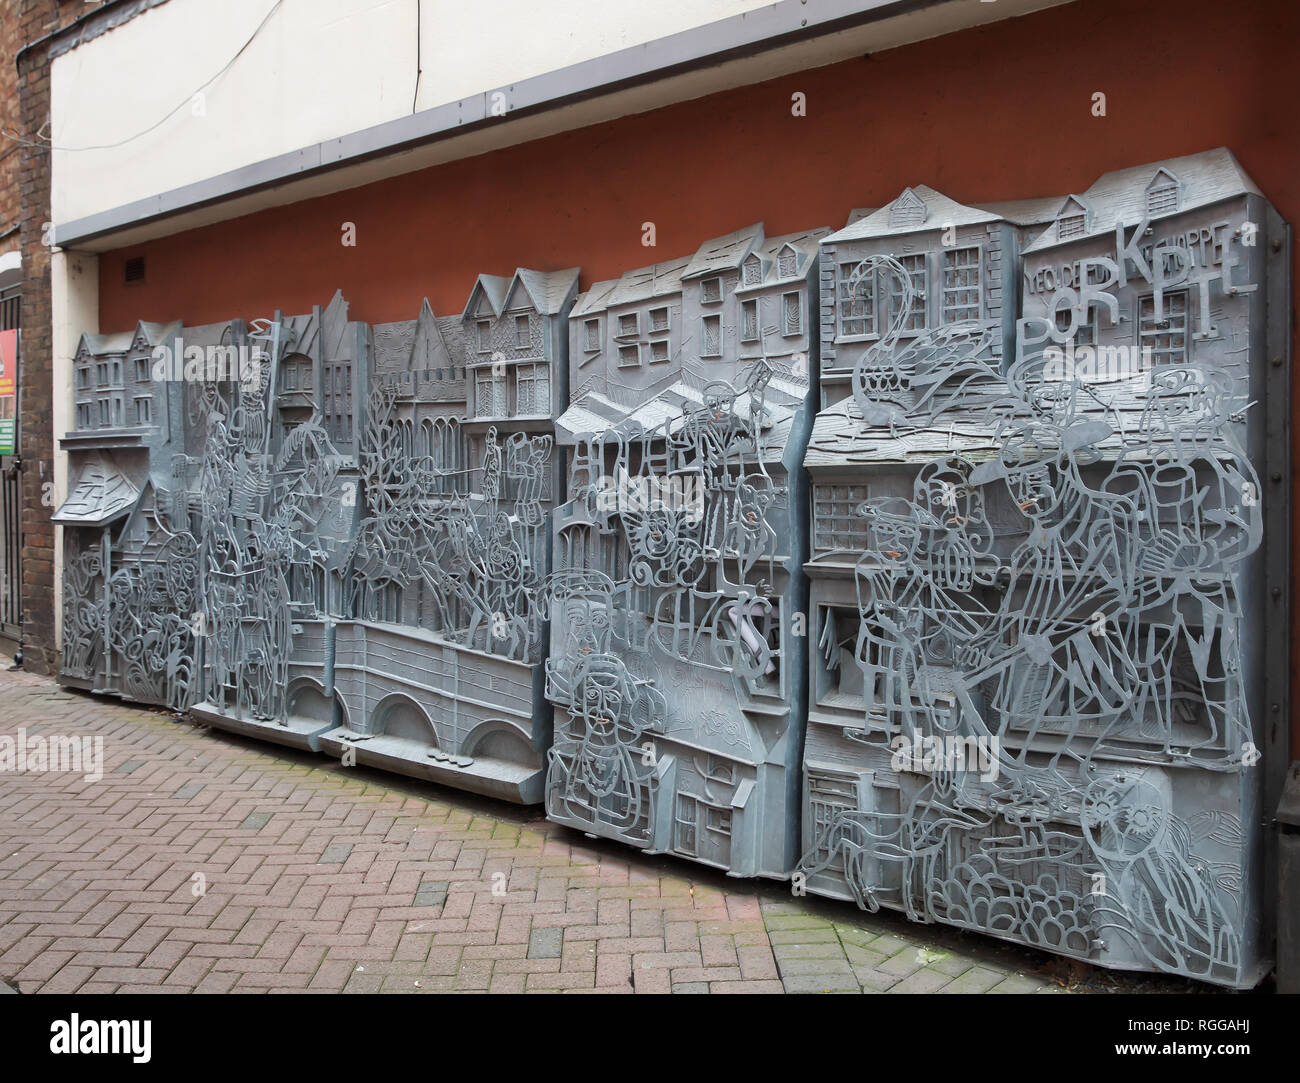 Metal Sculpture Wall Art Metal Sculpture Wall Art Depicting Local Features And Buildings By